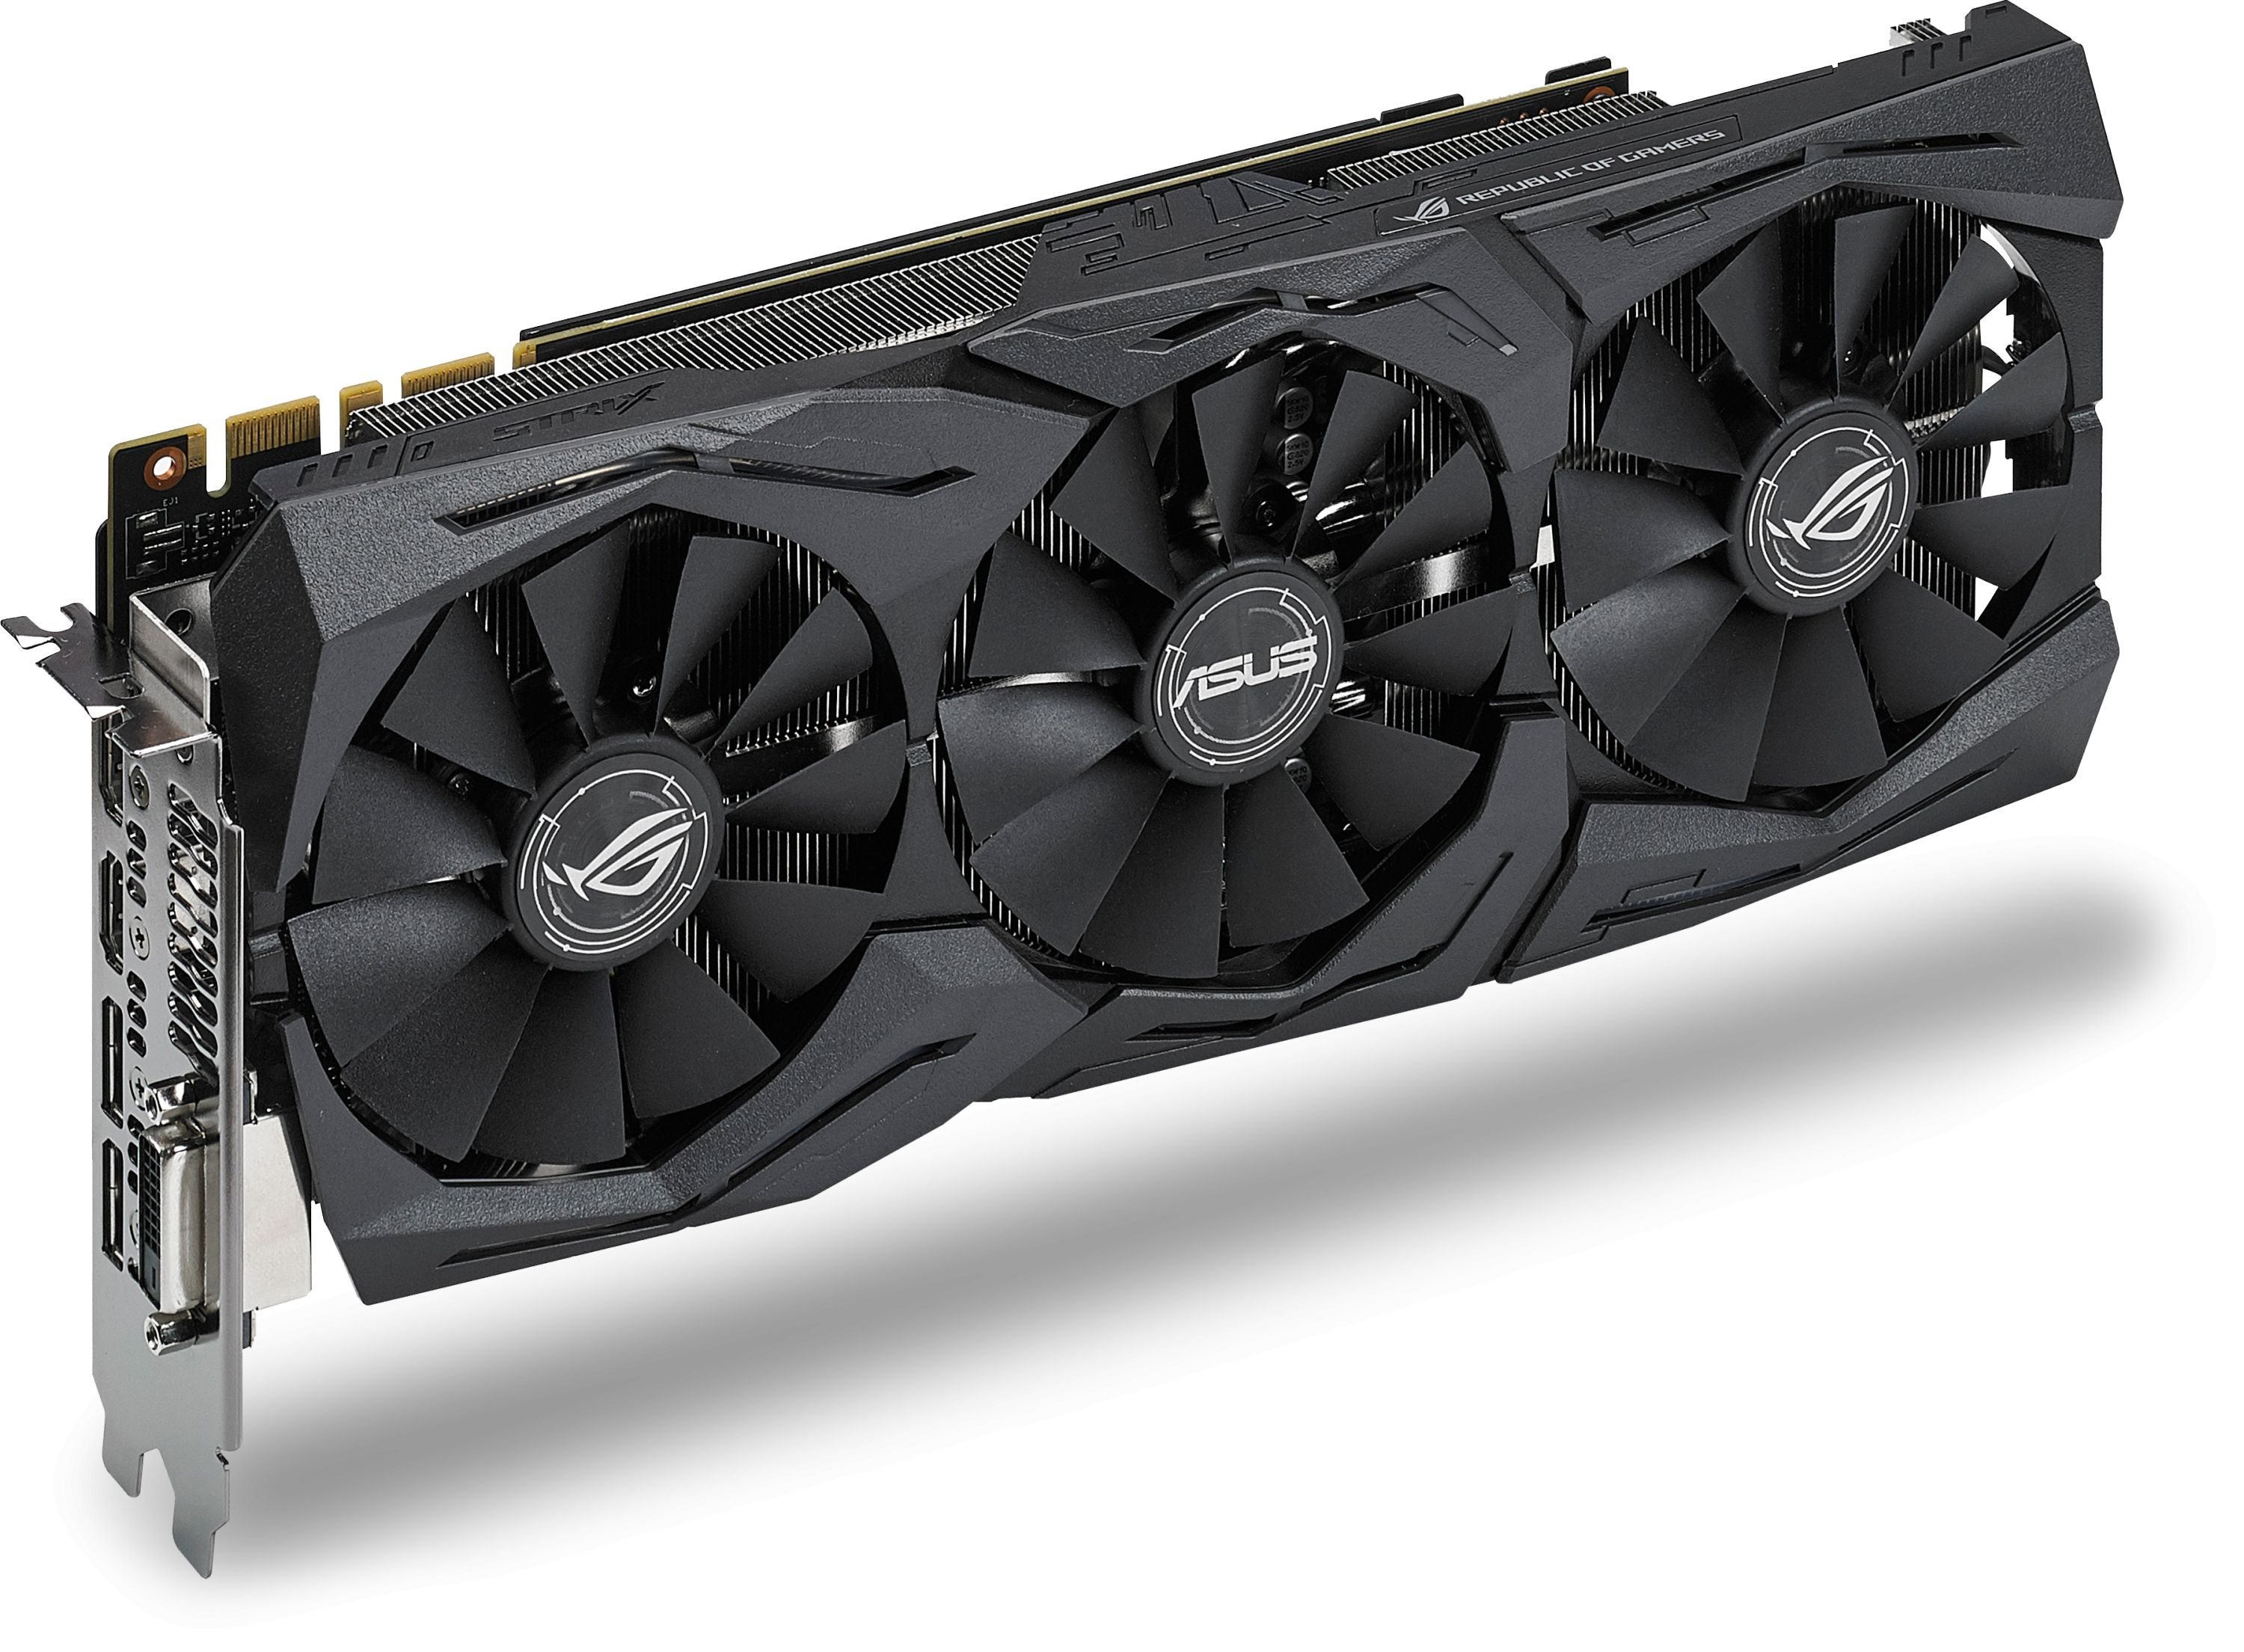 GeForce GTX 1080 ROG STRIX ADVANCED GAMING 8GB GDDR5X